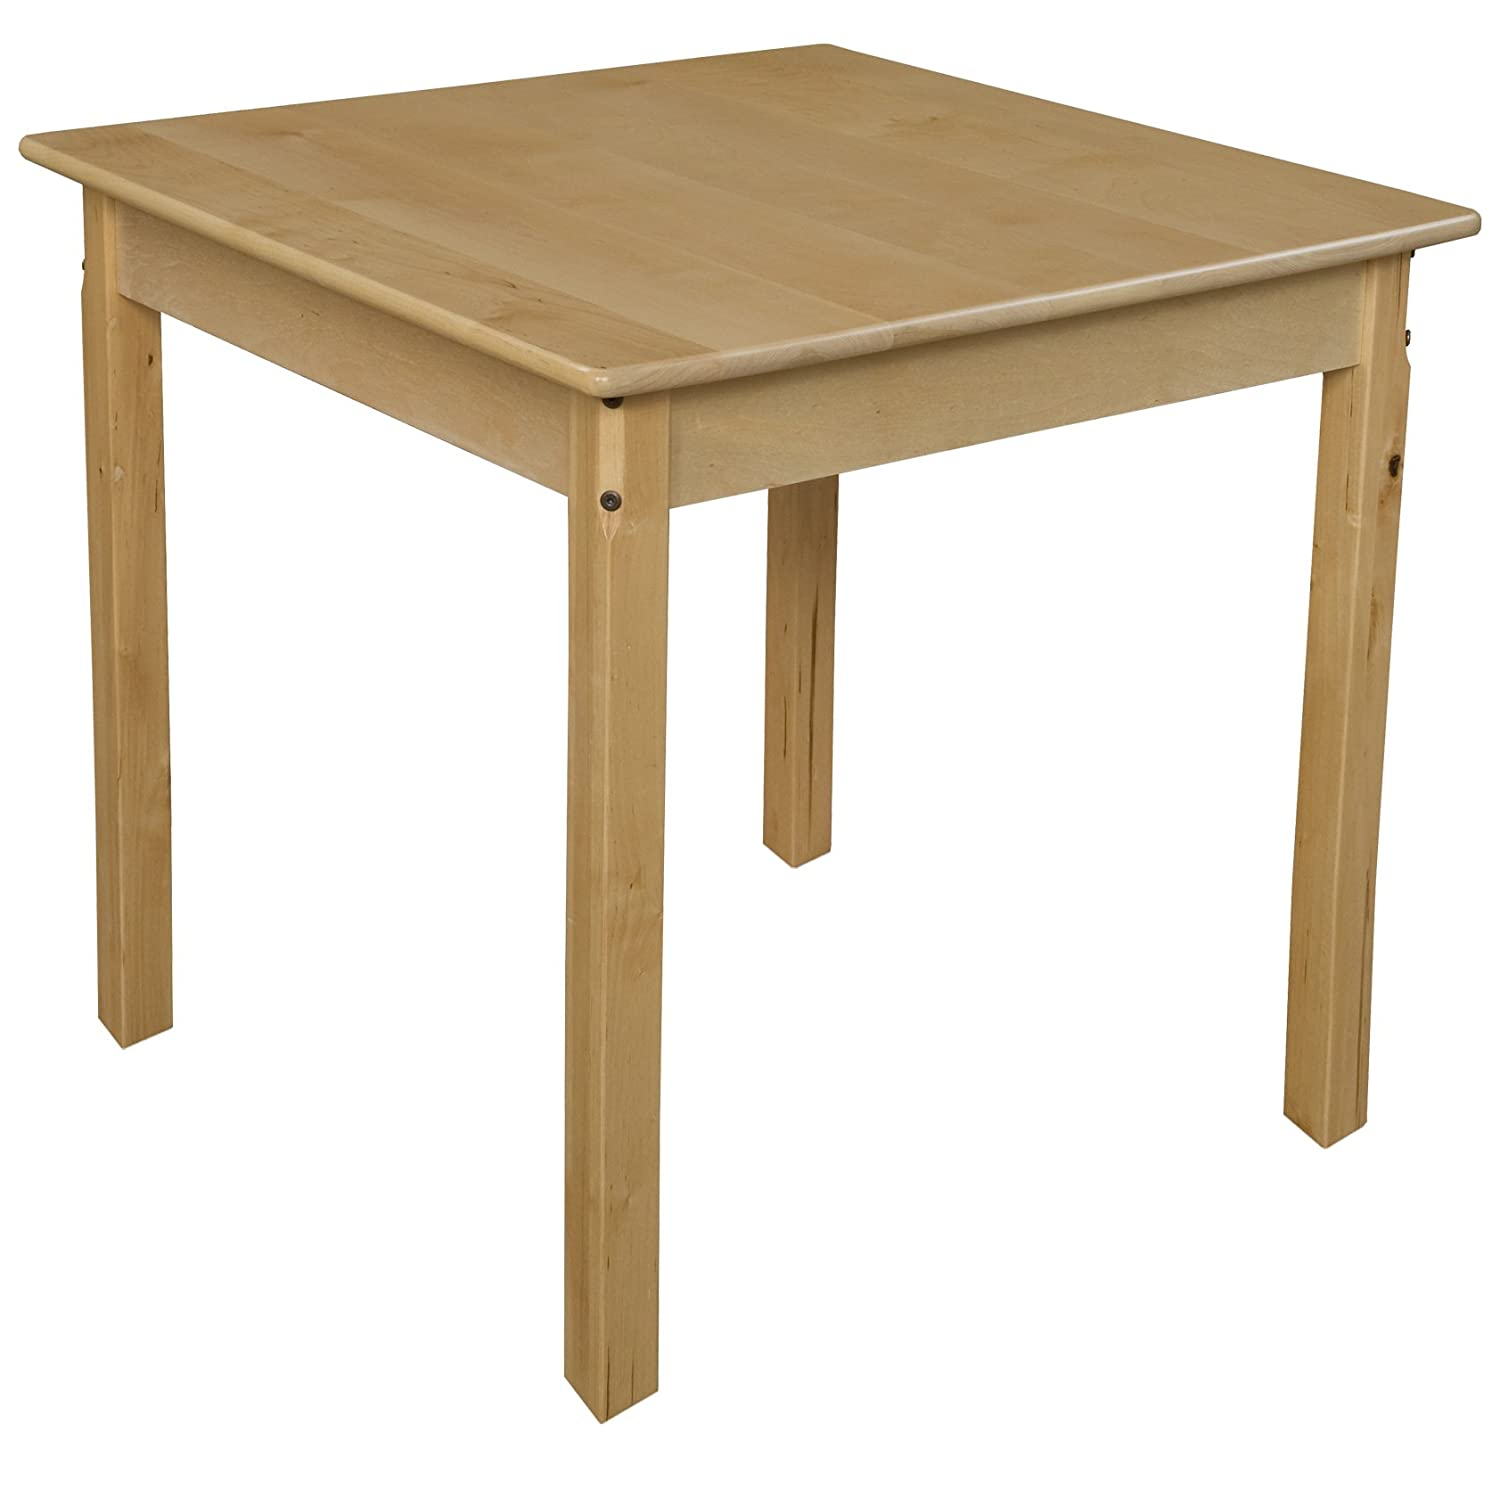 Natural Wood Designs WD83329 30 Square Hardwood Table with 29 Legs